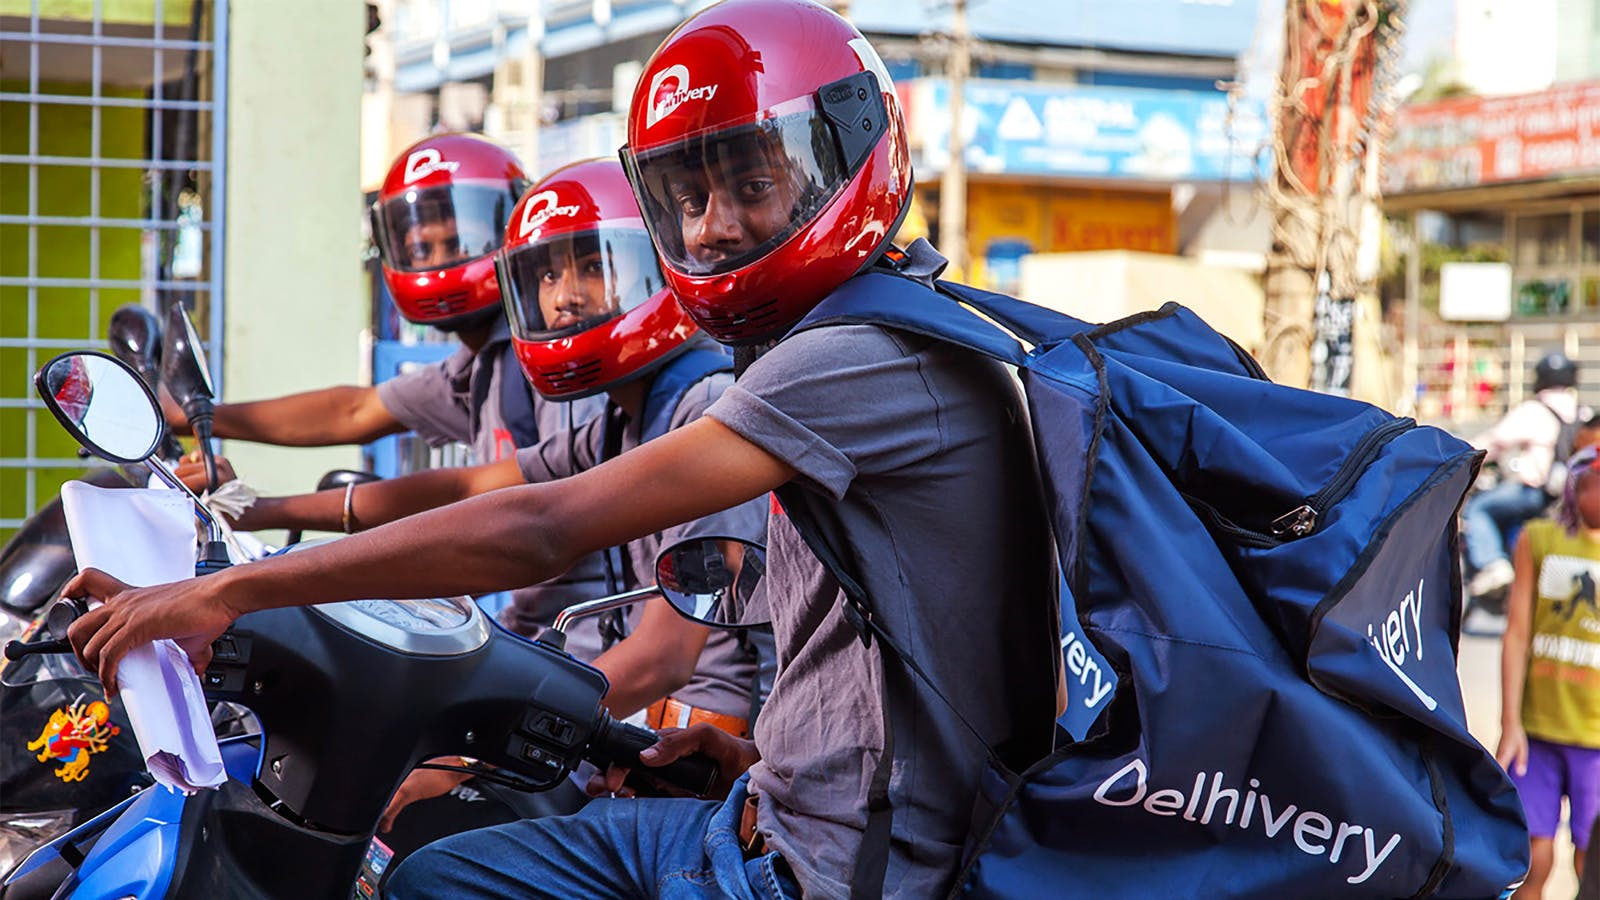 Delhivery couriers. Photo by Delhivery.